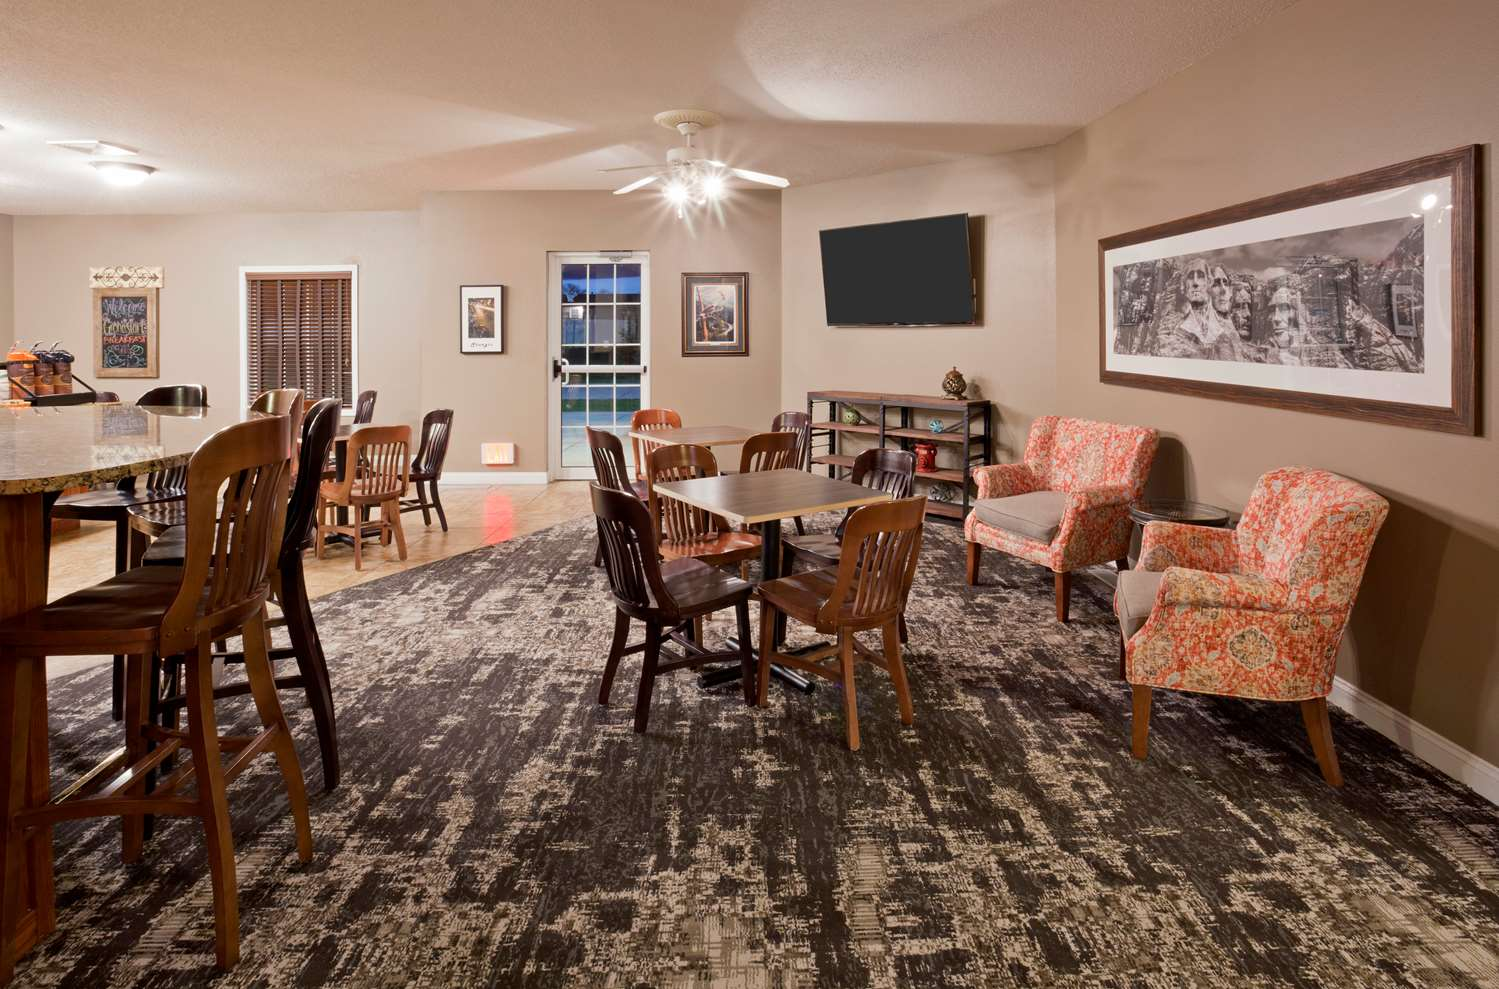 Restaurant - Grandstay Residential Suites Rapid City